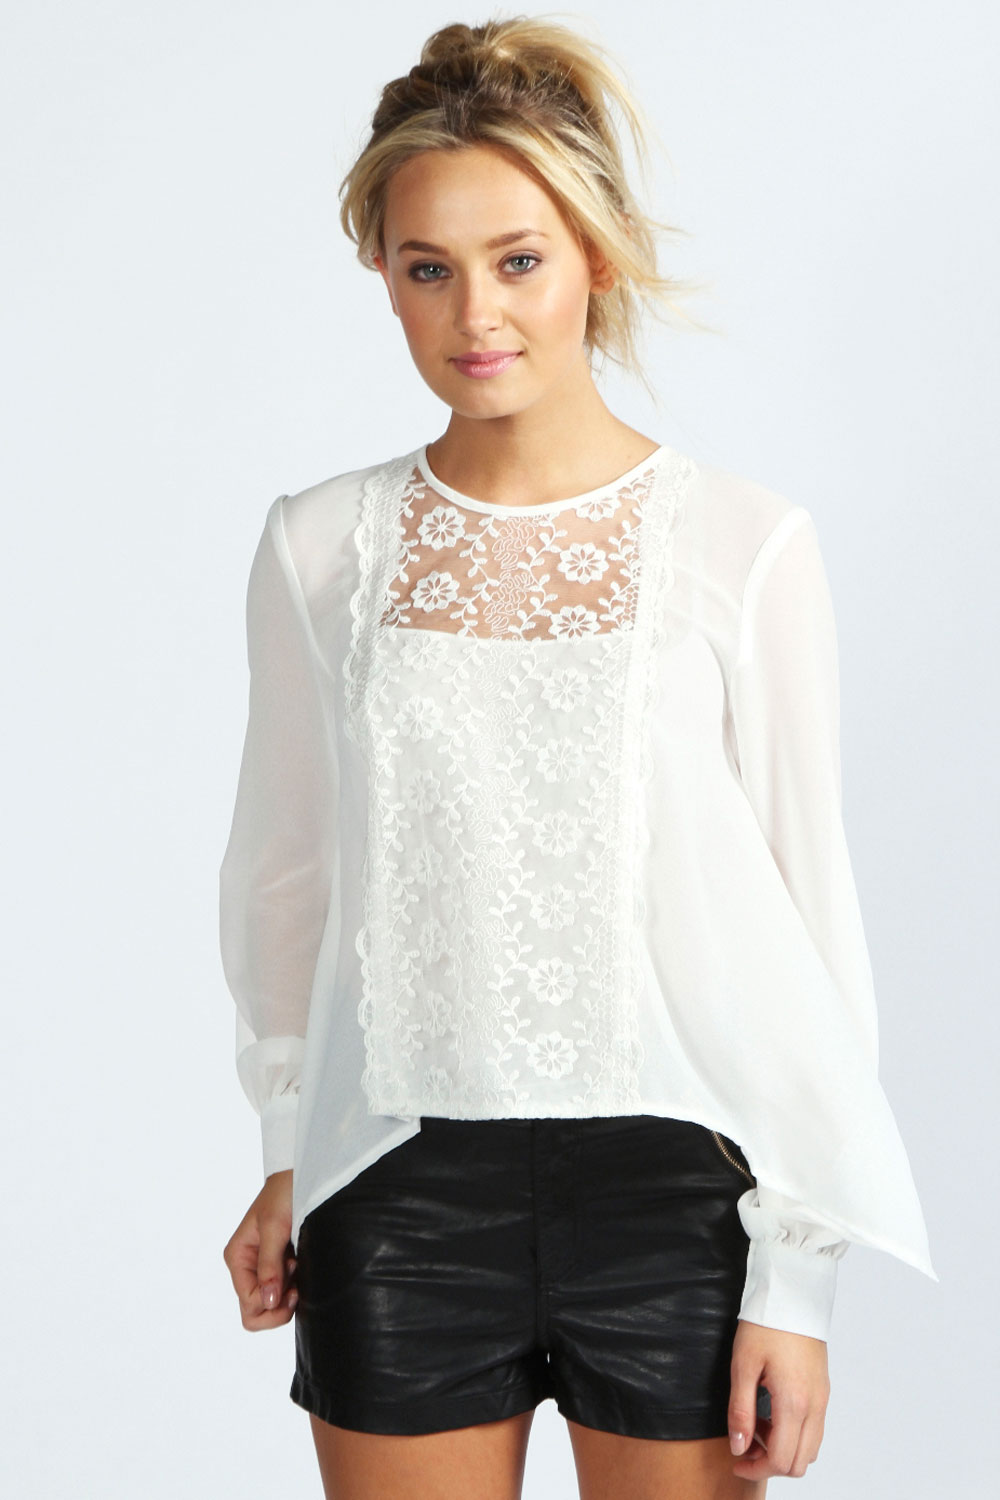 boohoo Rosie Lace Panel Open Back Blouse - ivory product image